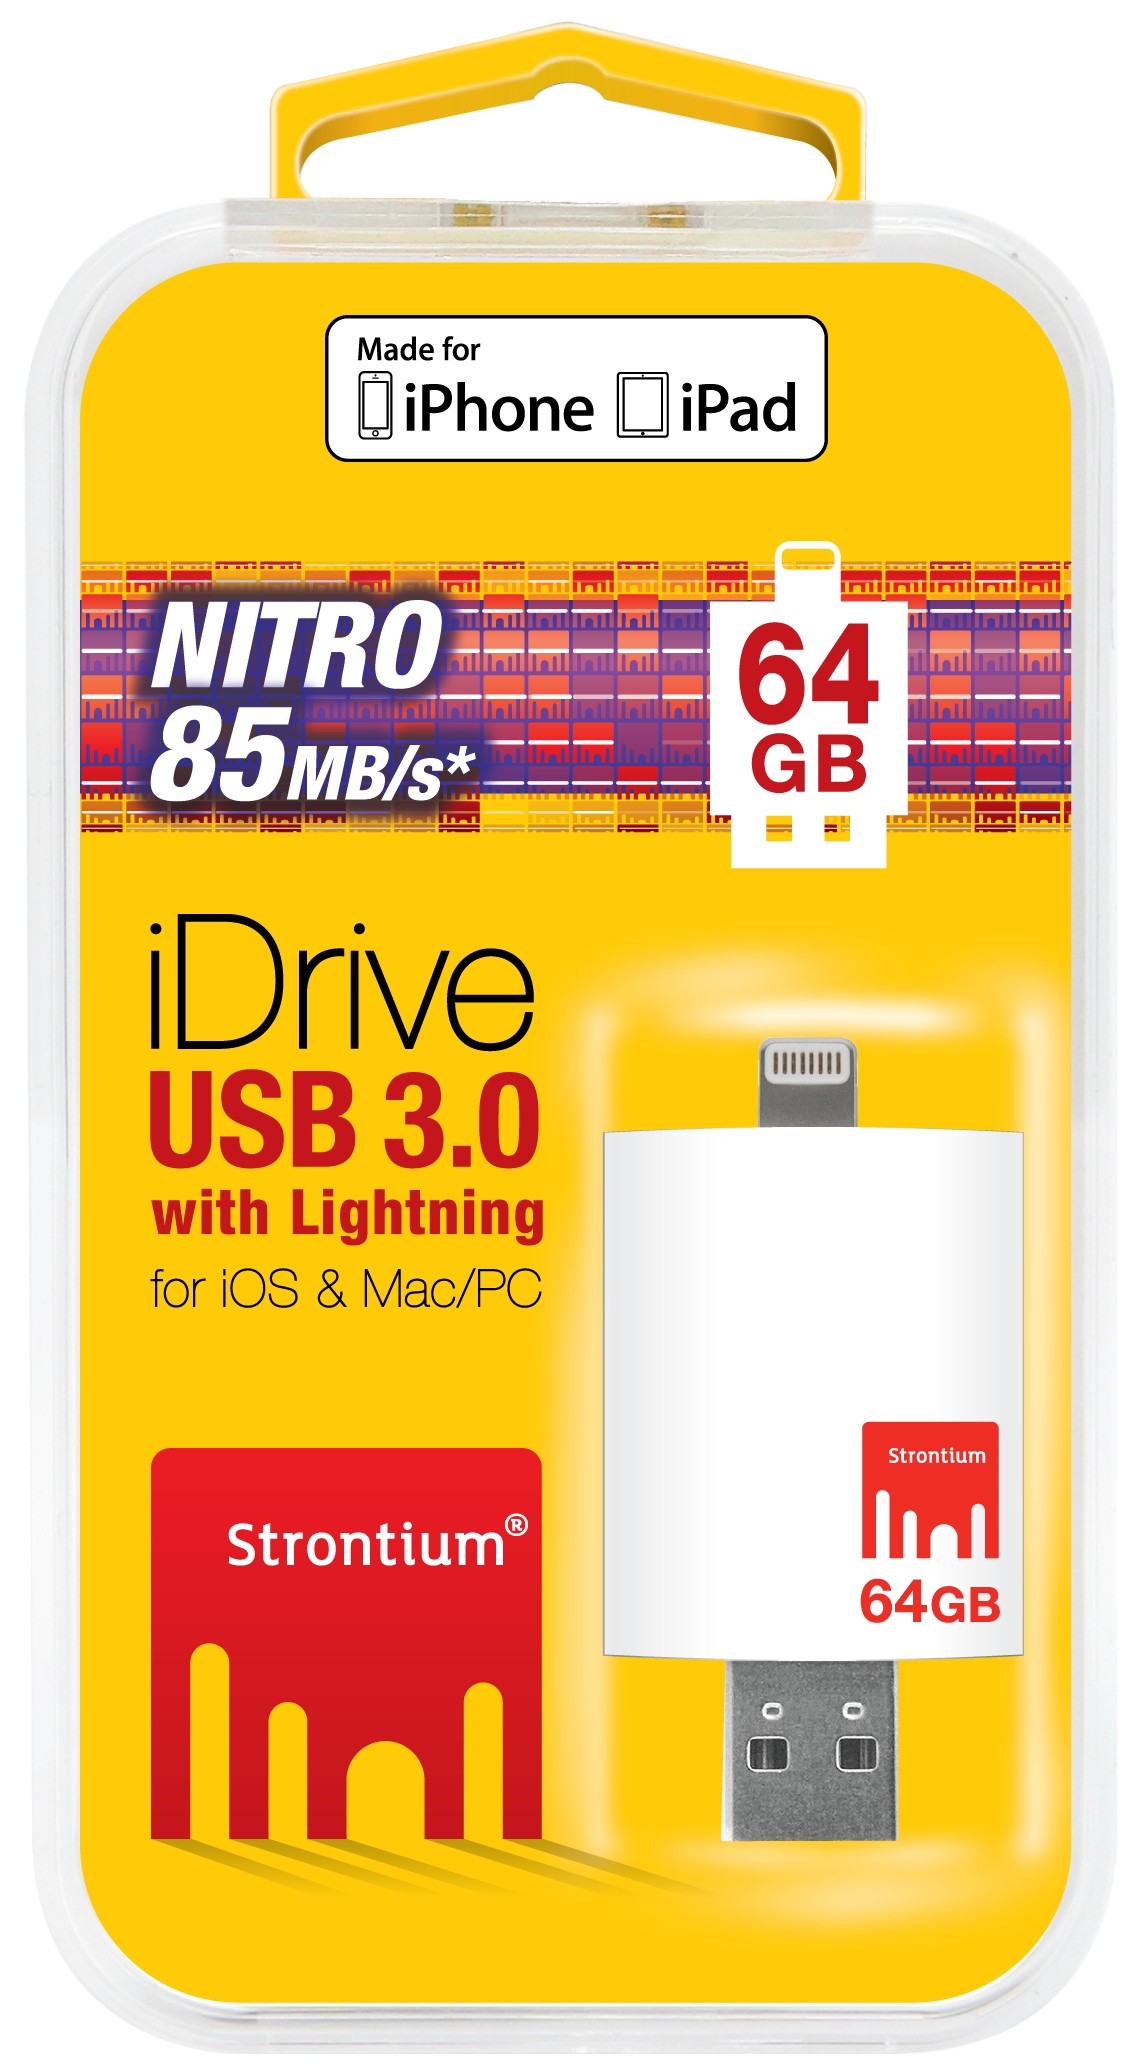 Strontium Introduces External Storage For Iphones And 128gb Microsd I Flashdrive Otg Card Reader Apple Iphone Ipad Cards In India Ibtimes